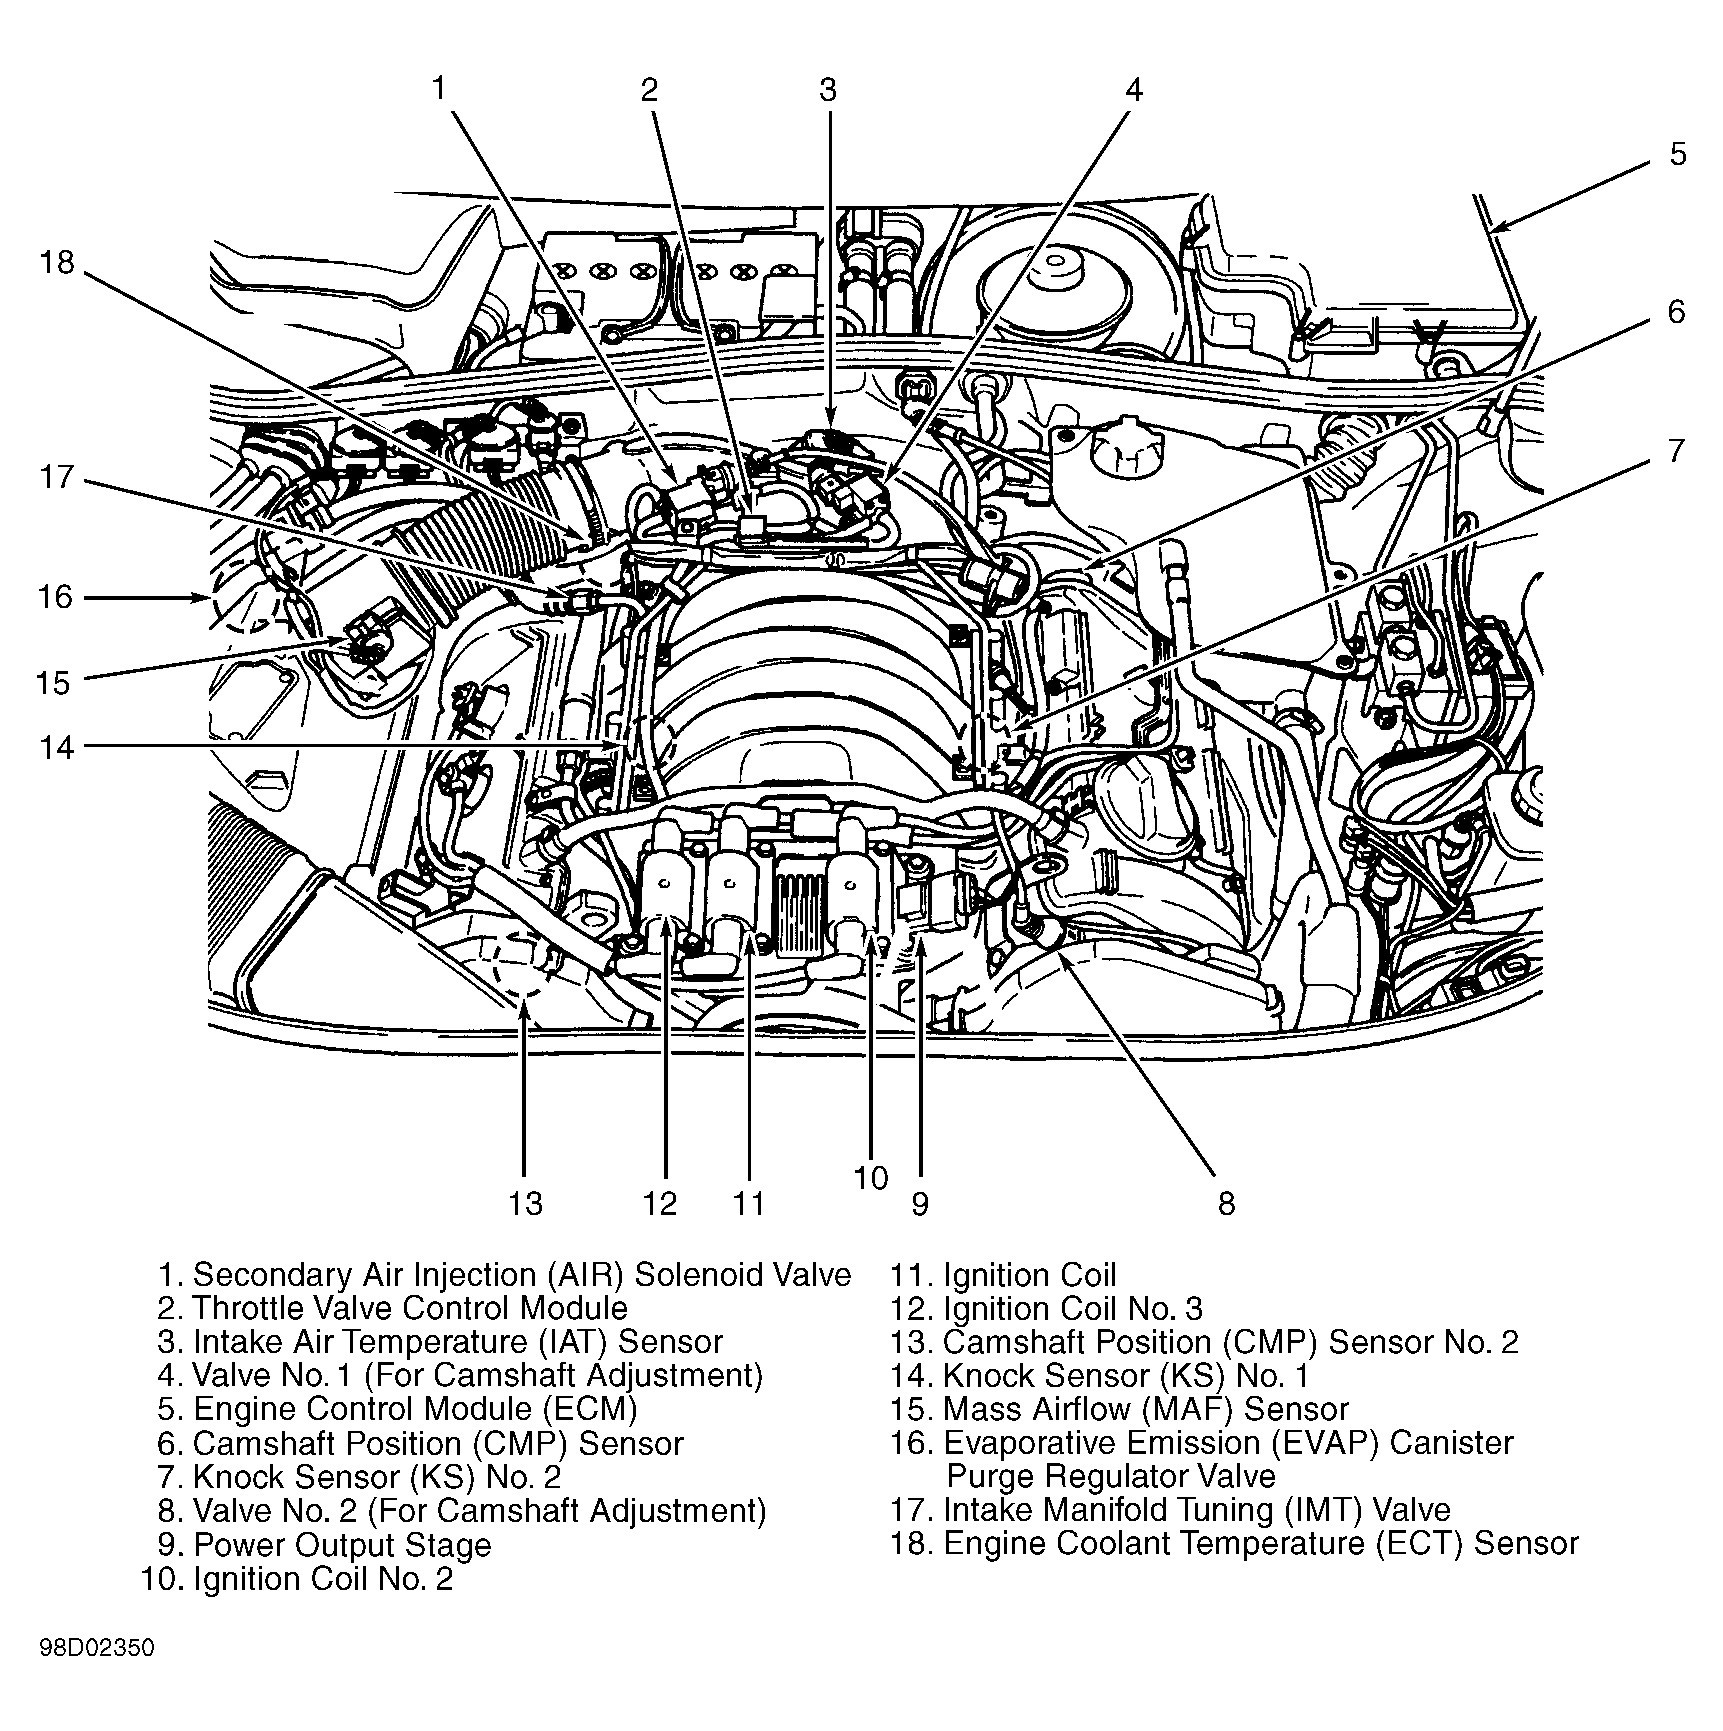 2002 Dodge Caravan Radiator Hose Diagram Dodge Wiring Diagrams